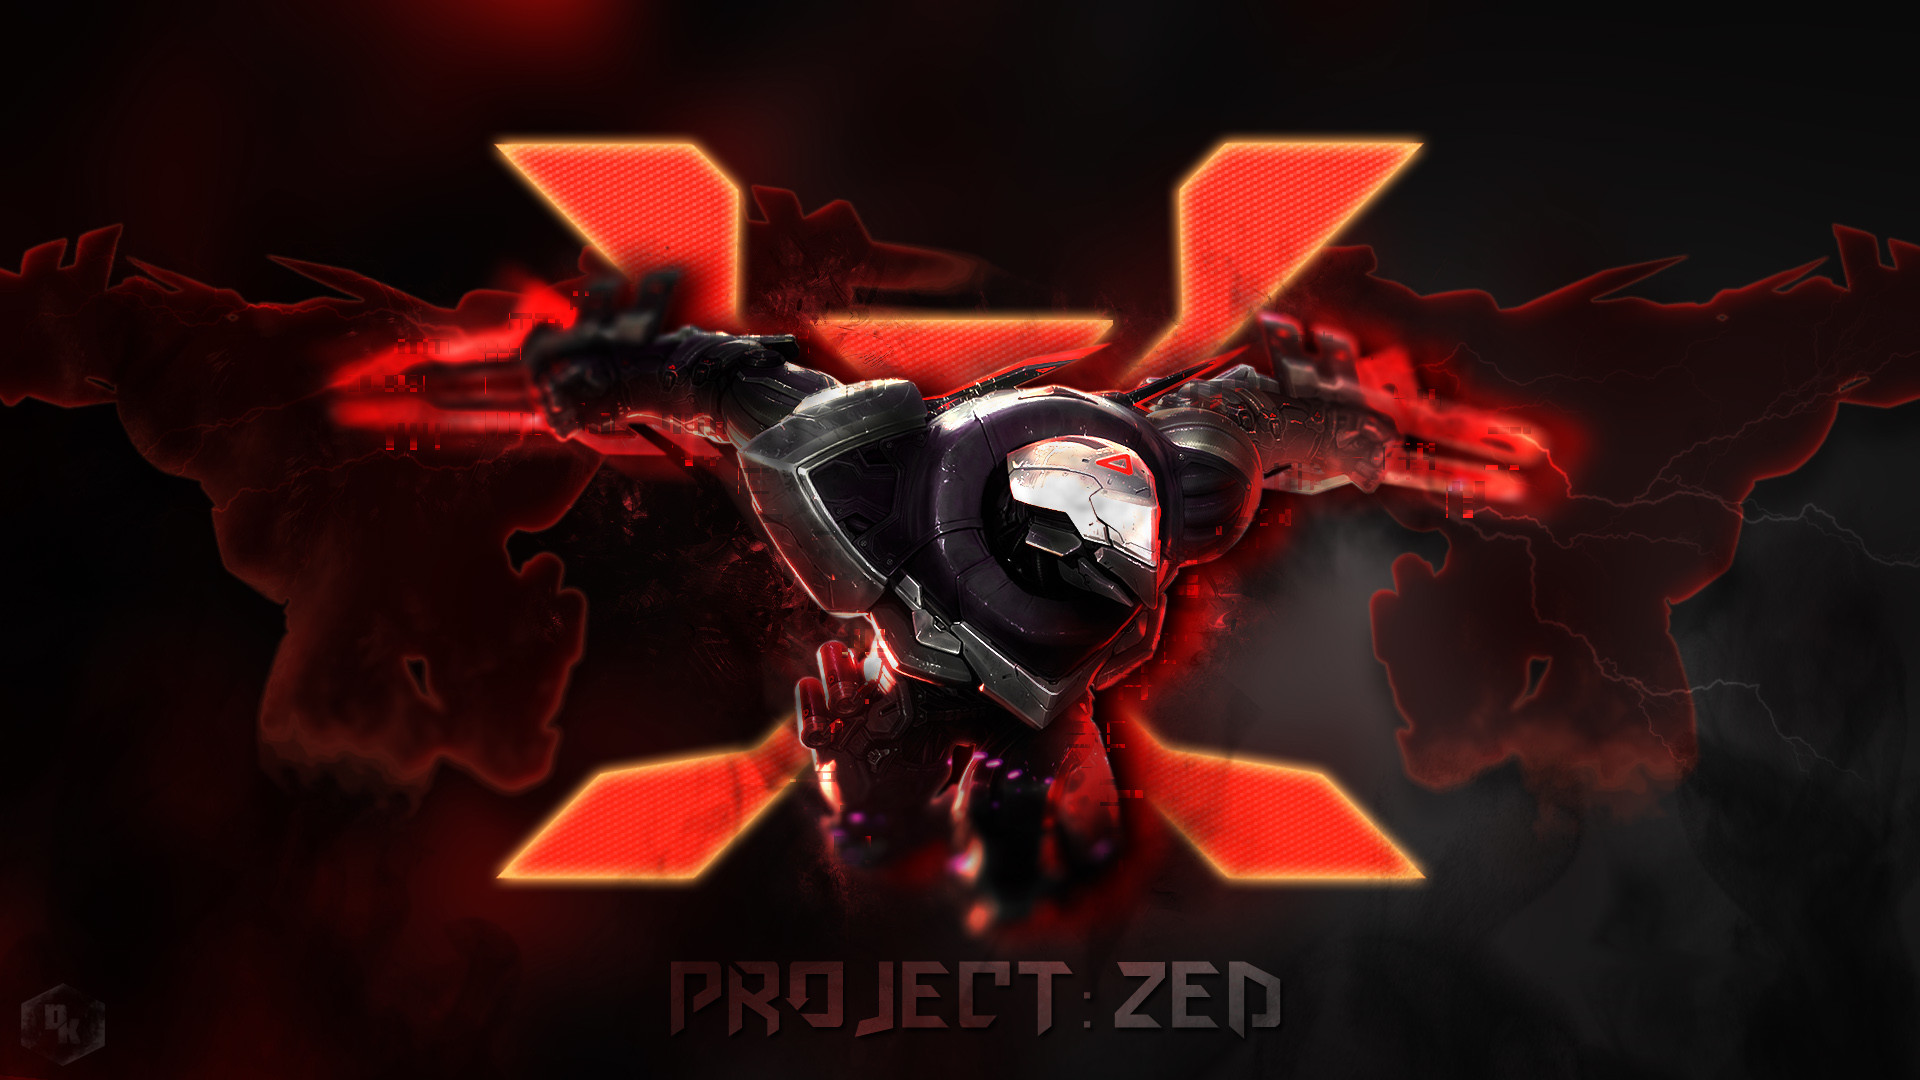 project zed splash art, skt t1 wallpaper